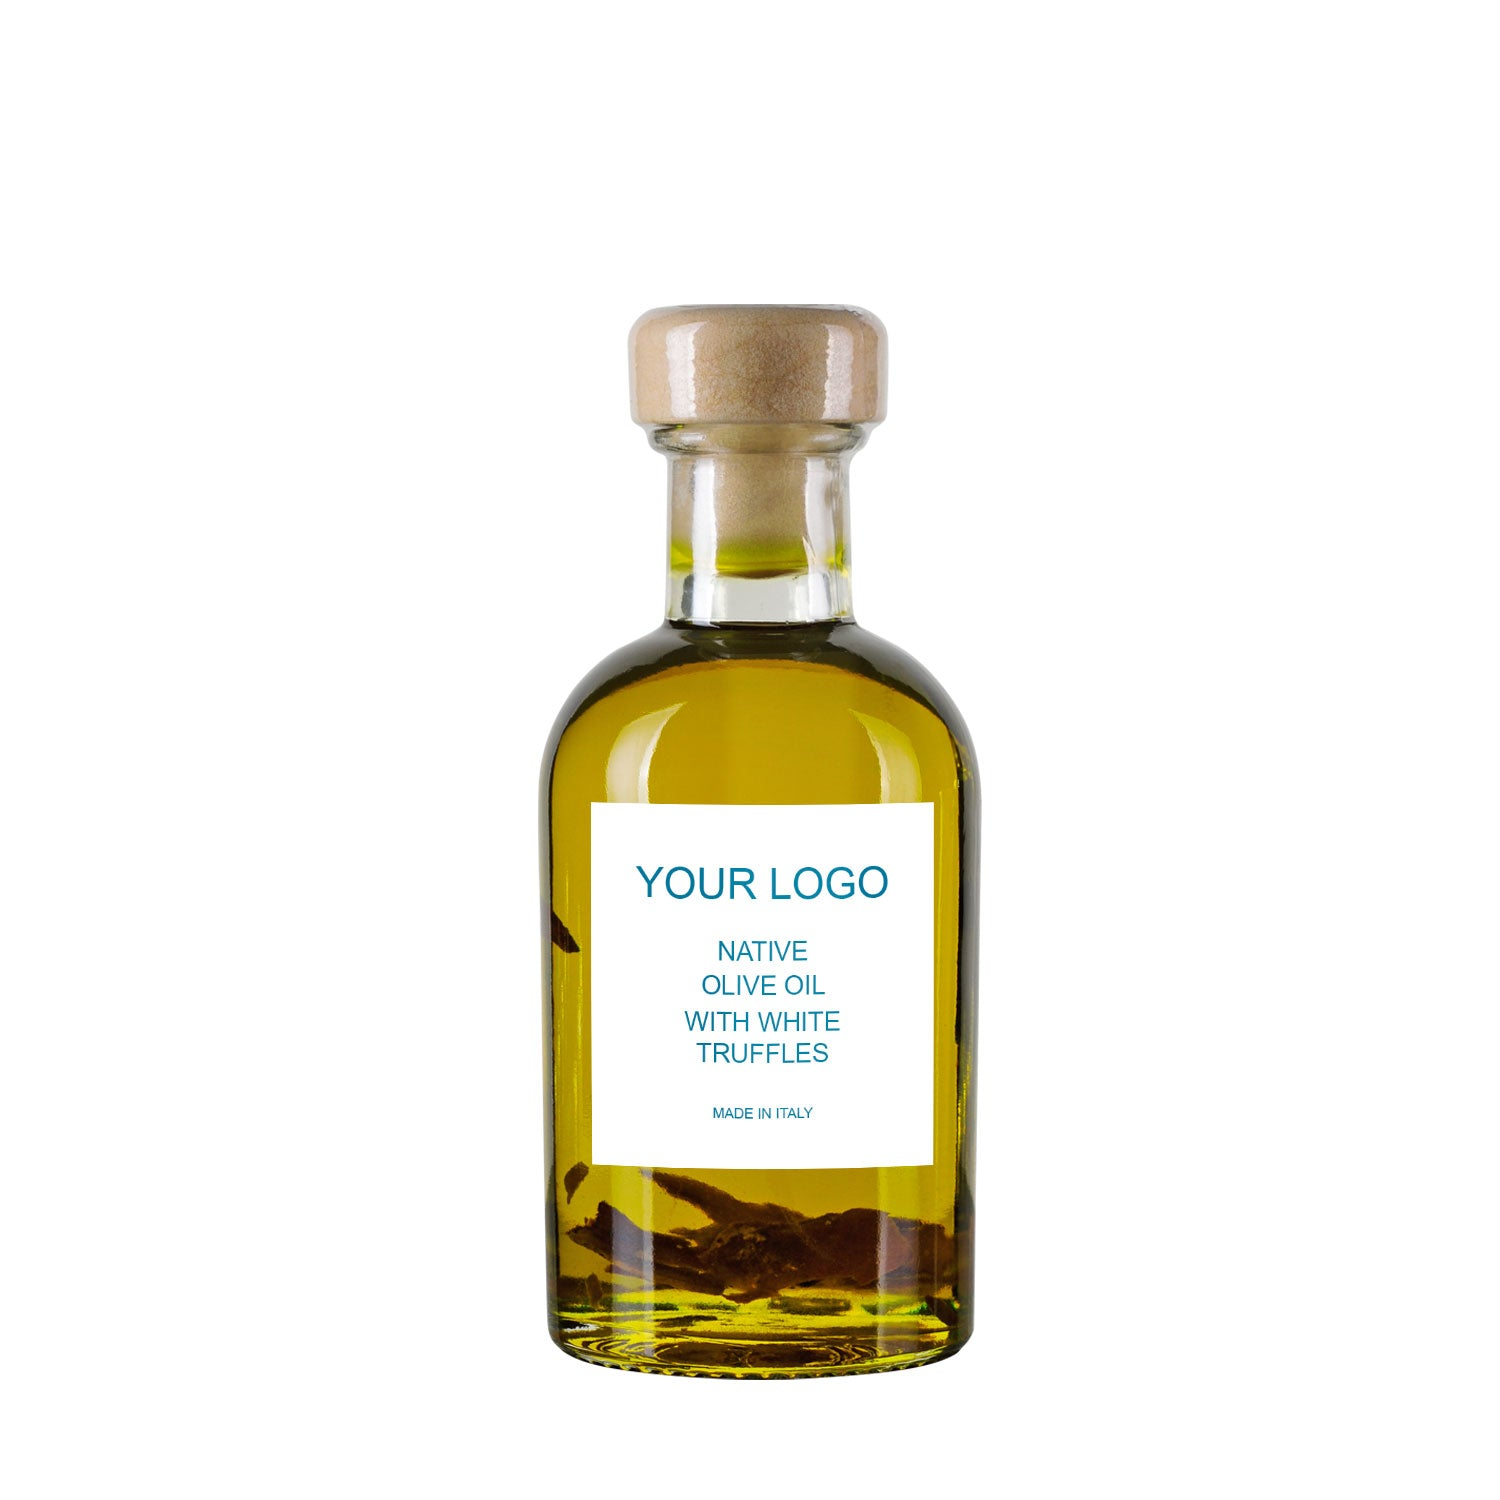 DARIO'S WHITE TRUFFLE OIL FROM PIEDMONT, ITALY, 100ML